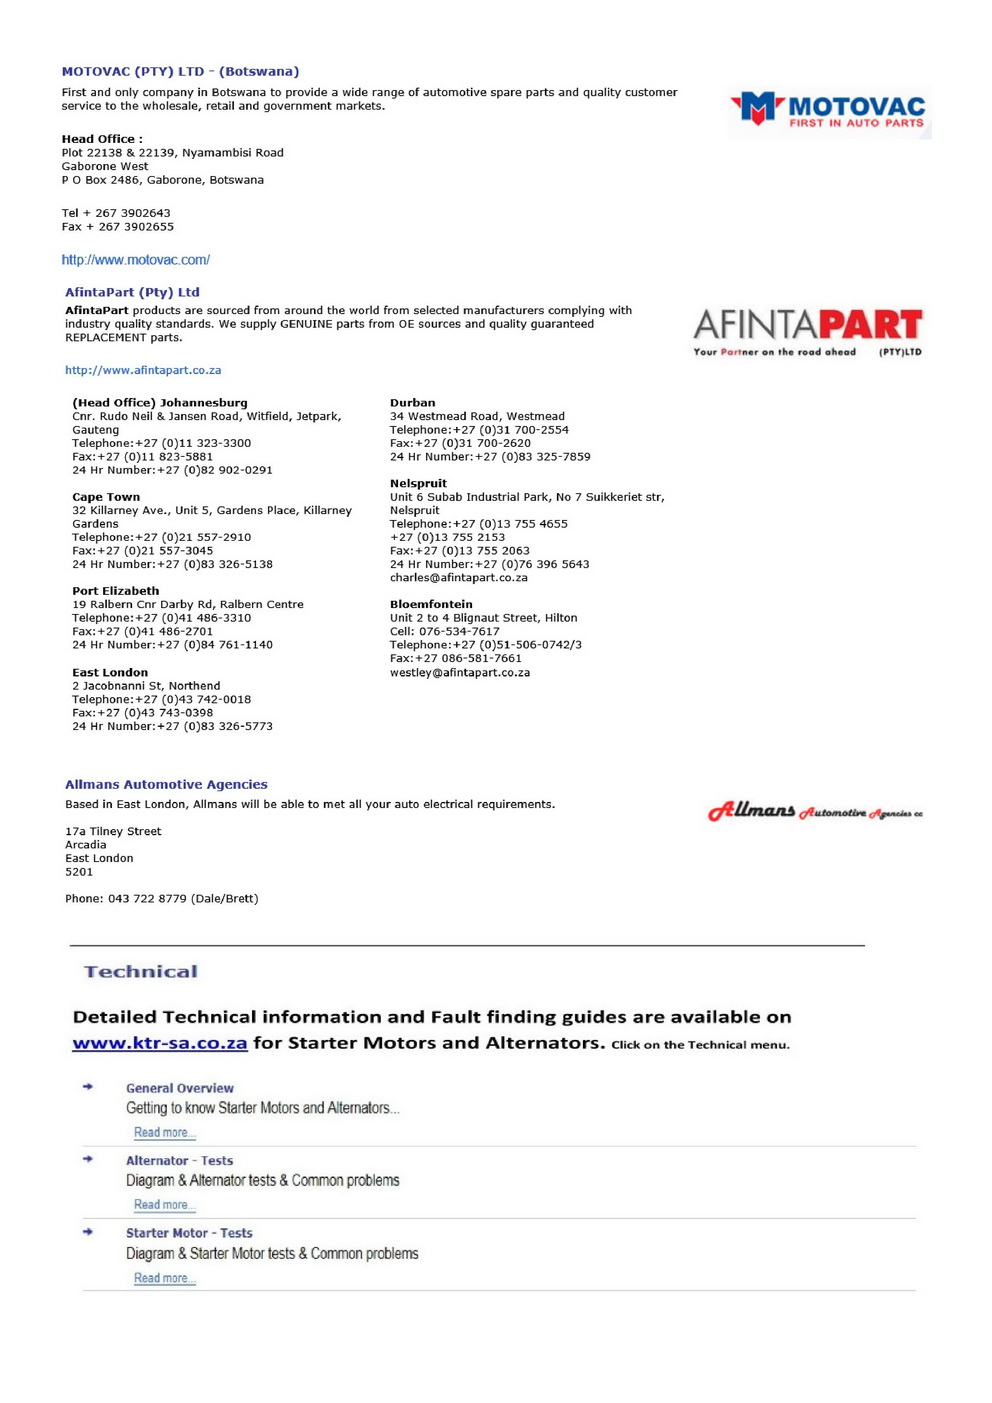 Ktr Sa Alternator And Starter Motor Wiring Diagram Additional Info On Starters Alternators Interesting Important Stuff To Know When Repairing Selling Testing Replacing Units